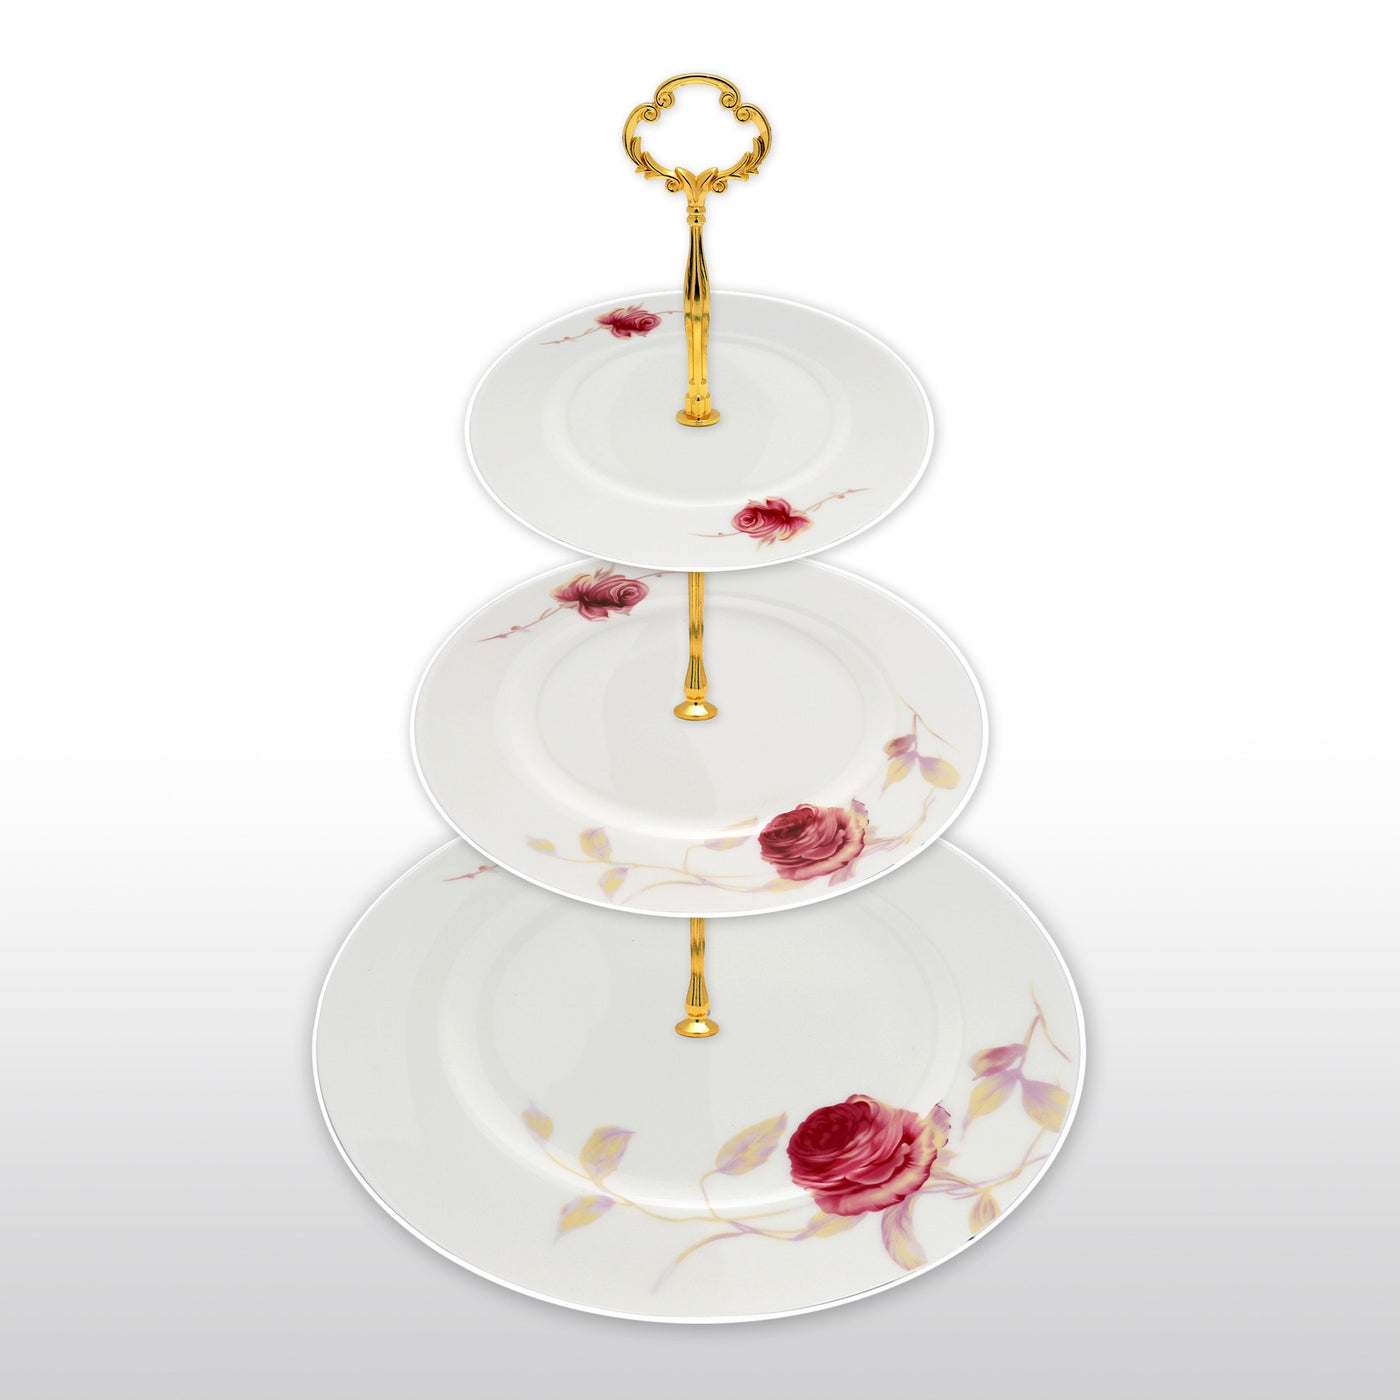 Dinnerwares   Fine Bone China 3 Tier Cake Stand Pink Blossom And Leaf In  Gradient Colors ...